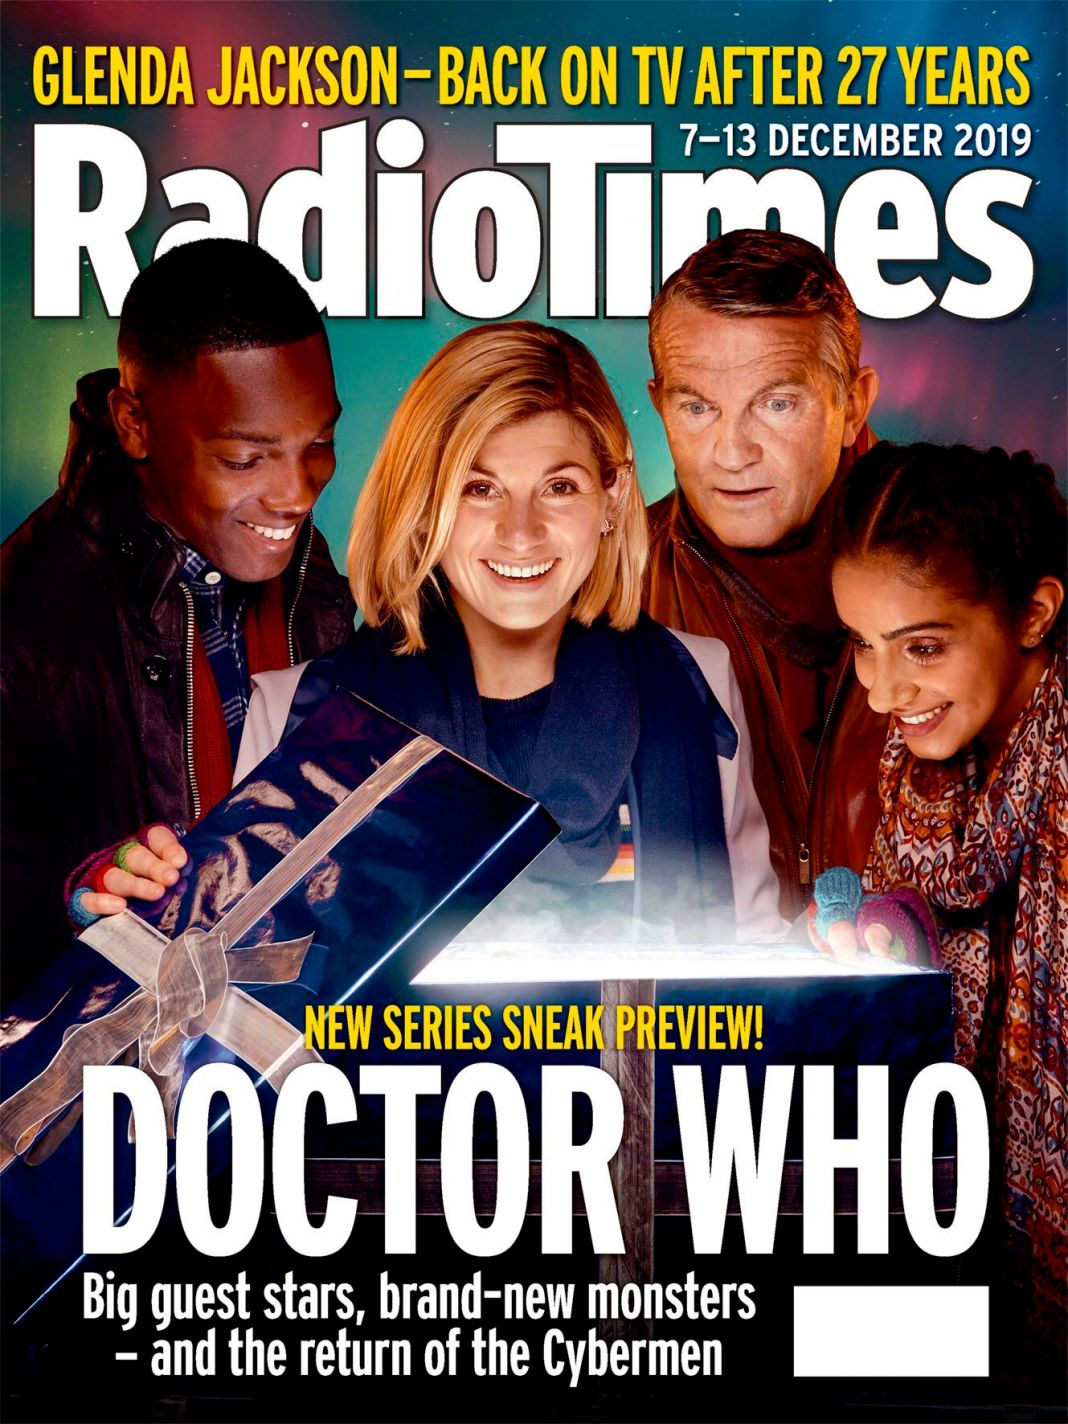 The Radio Times for the 7th-13th of December 2019. Featuring (l-r) Tosin Cole (Ryan), Jodie Whittaker (the Doctor), Bradley Walsh (Graham) and Mandip Gill (Yaz). Photo by Mark Harrison. (c) Radio Times